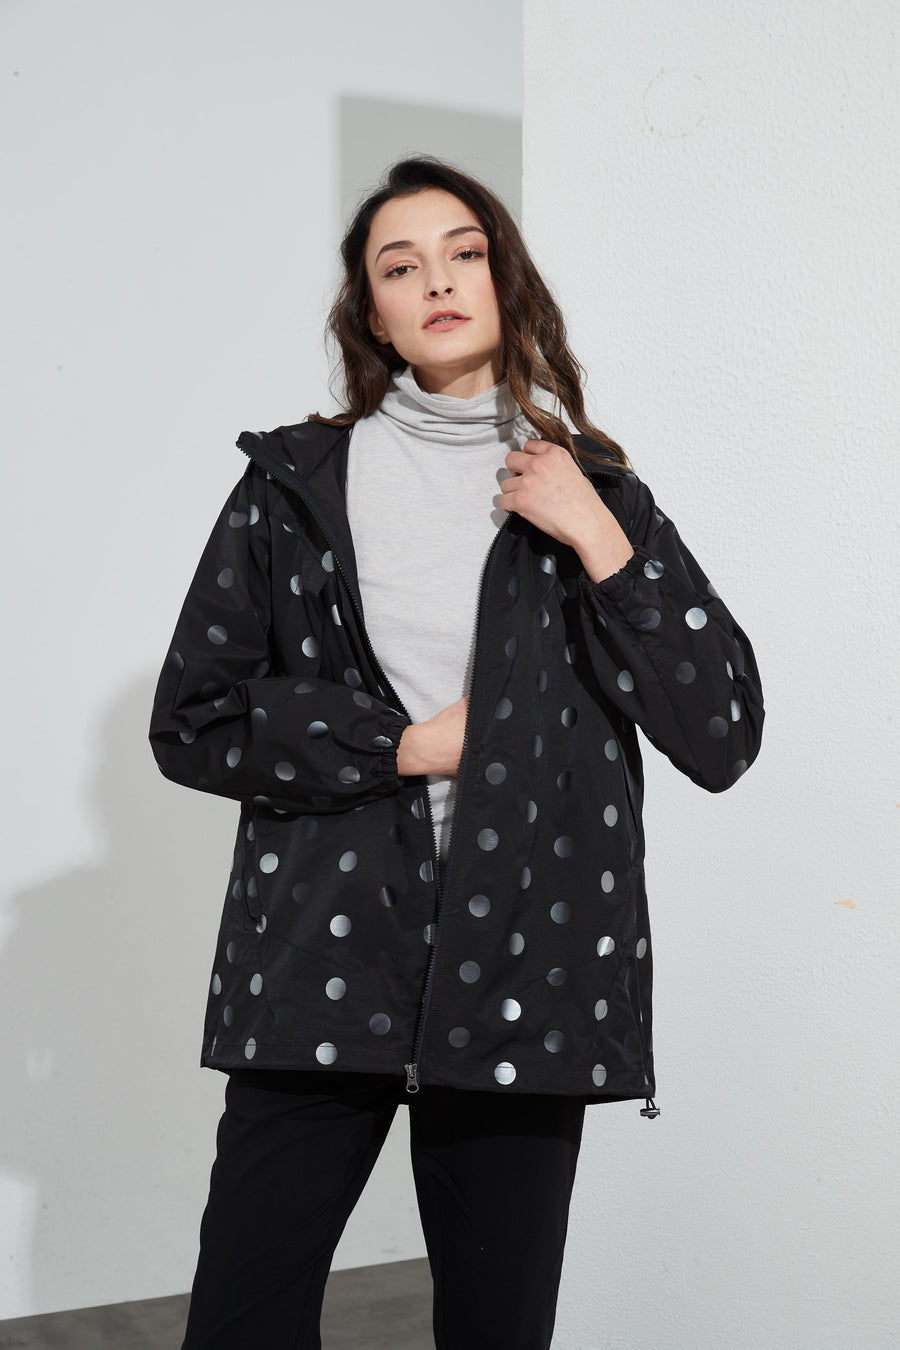 Back Detail Jacket - Black Spot - Shop Online At Mookah - mookah.com.au